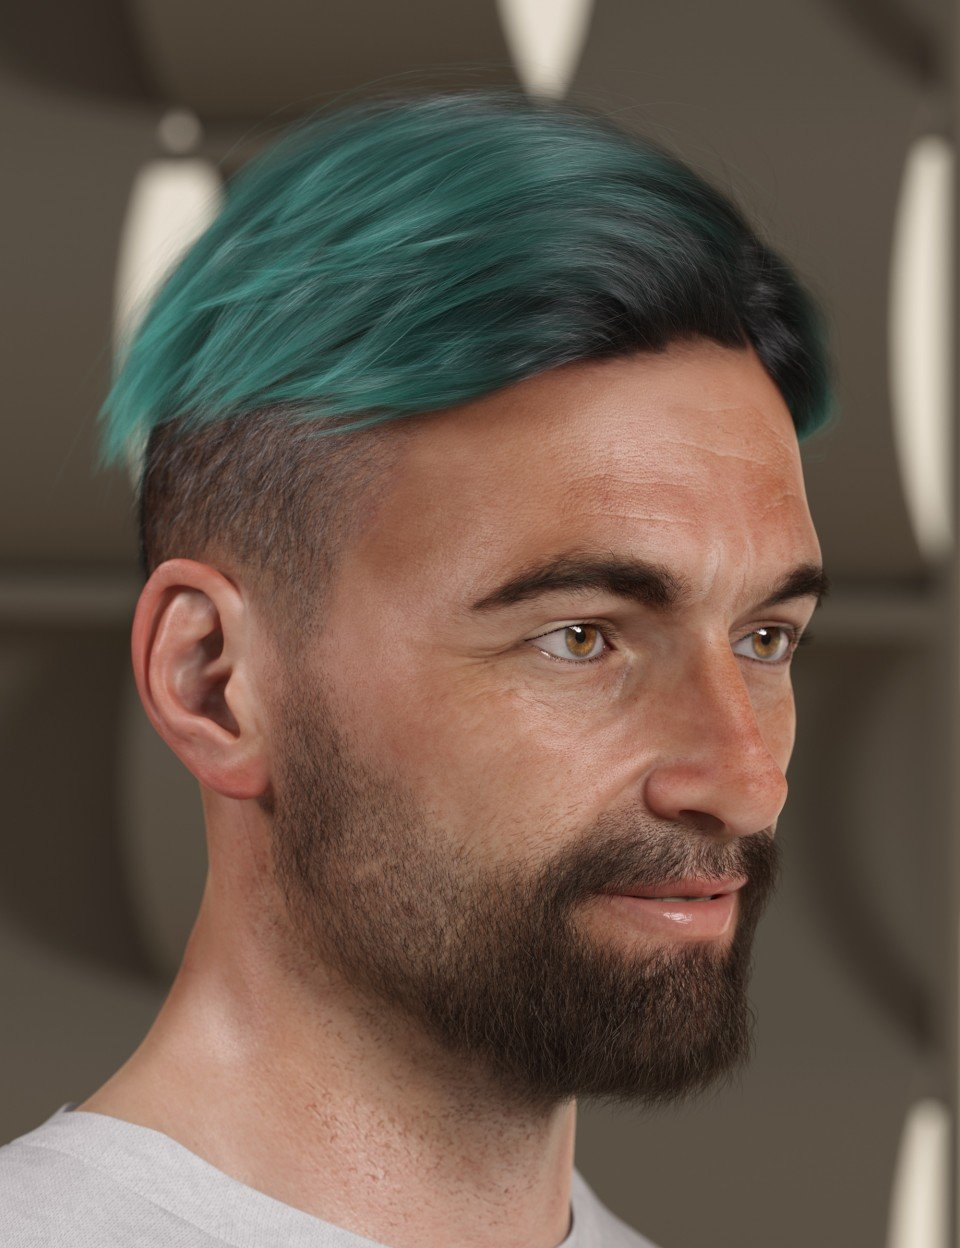 Texture Expansion for Short Fade Hair_DAZ3D下载站